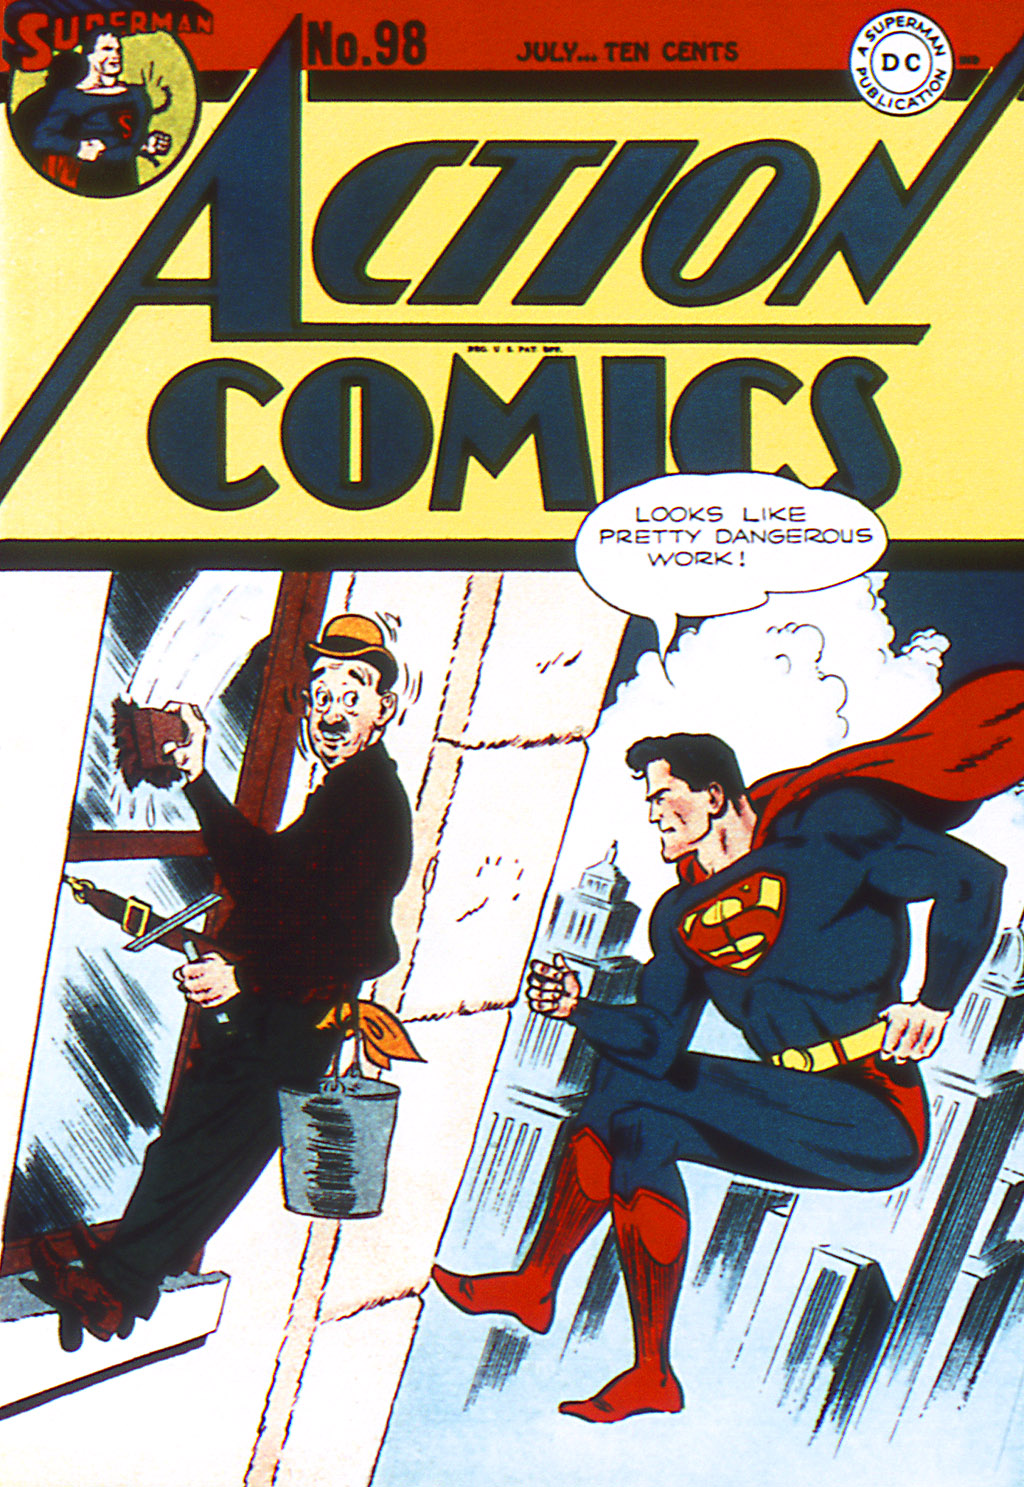 Read online Action Comics (1938) comic -  Issue #98 - 1